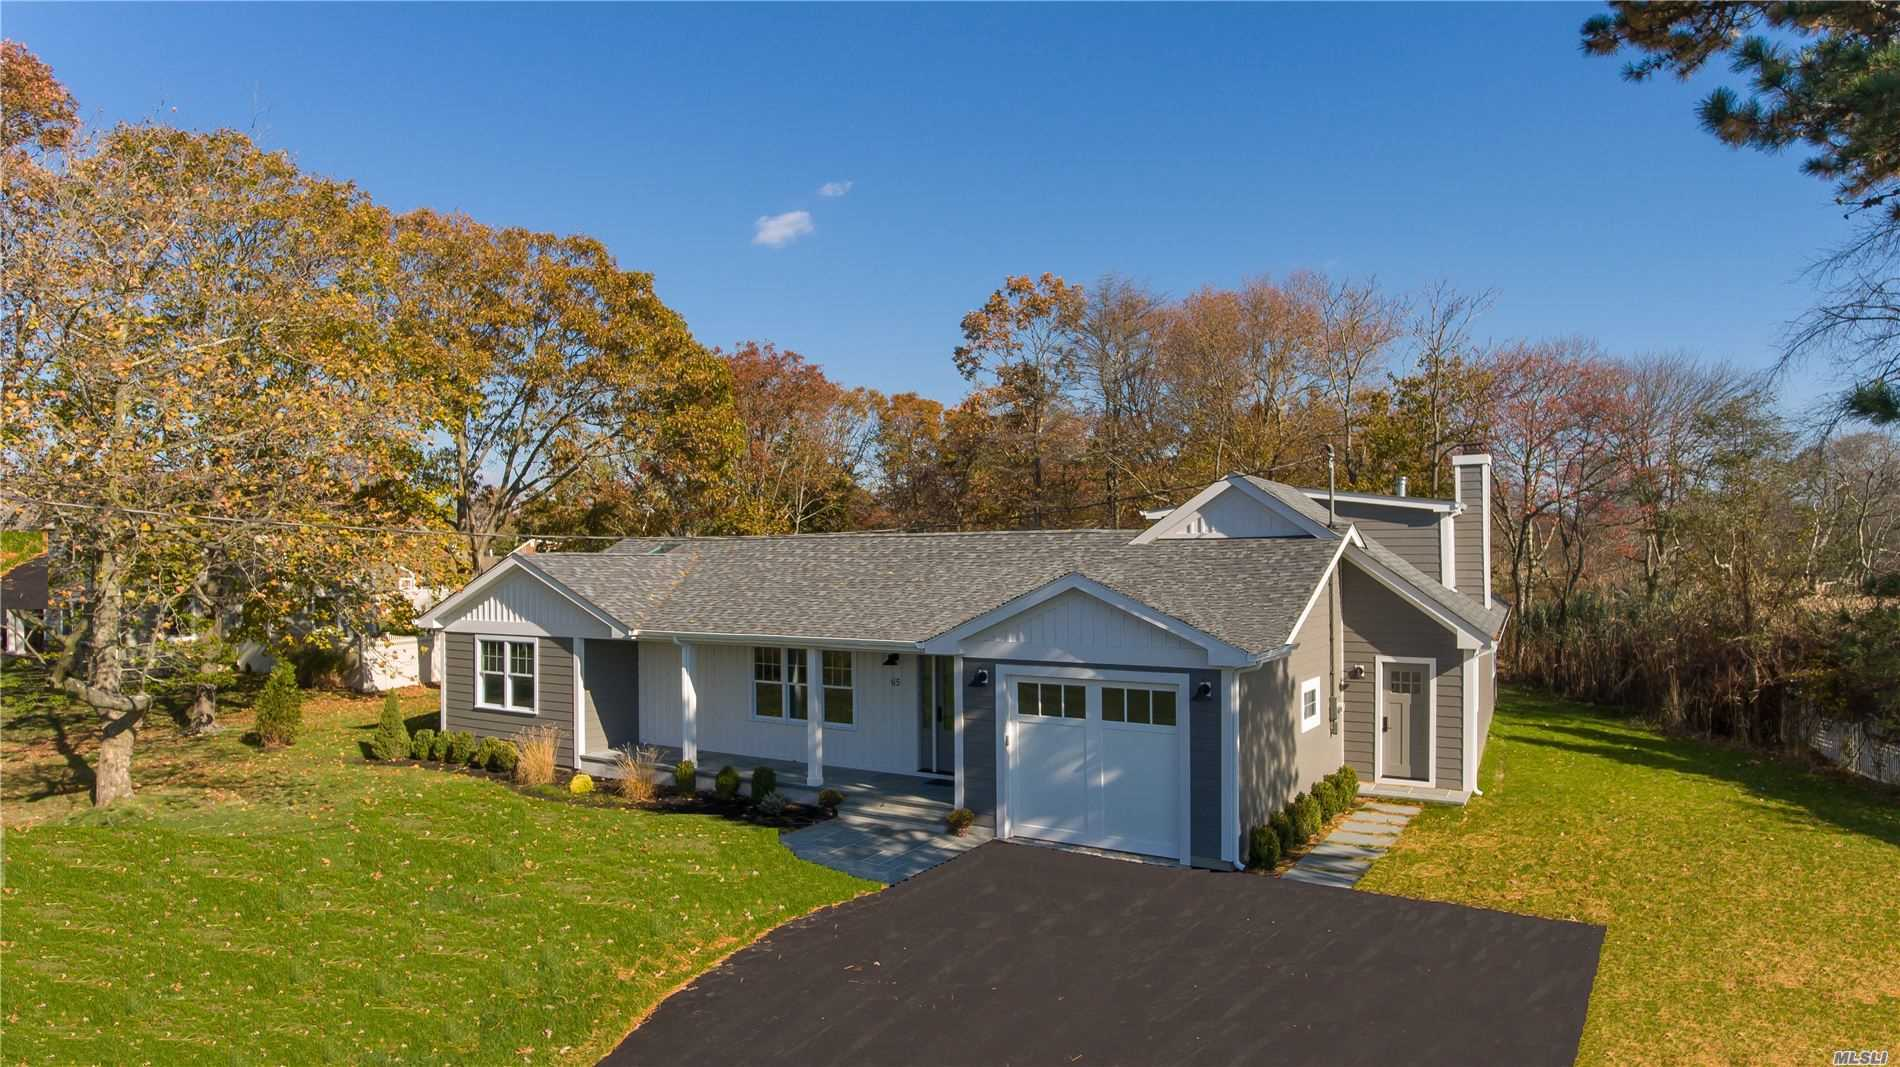 65 Elder Rd, Islip, New York